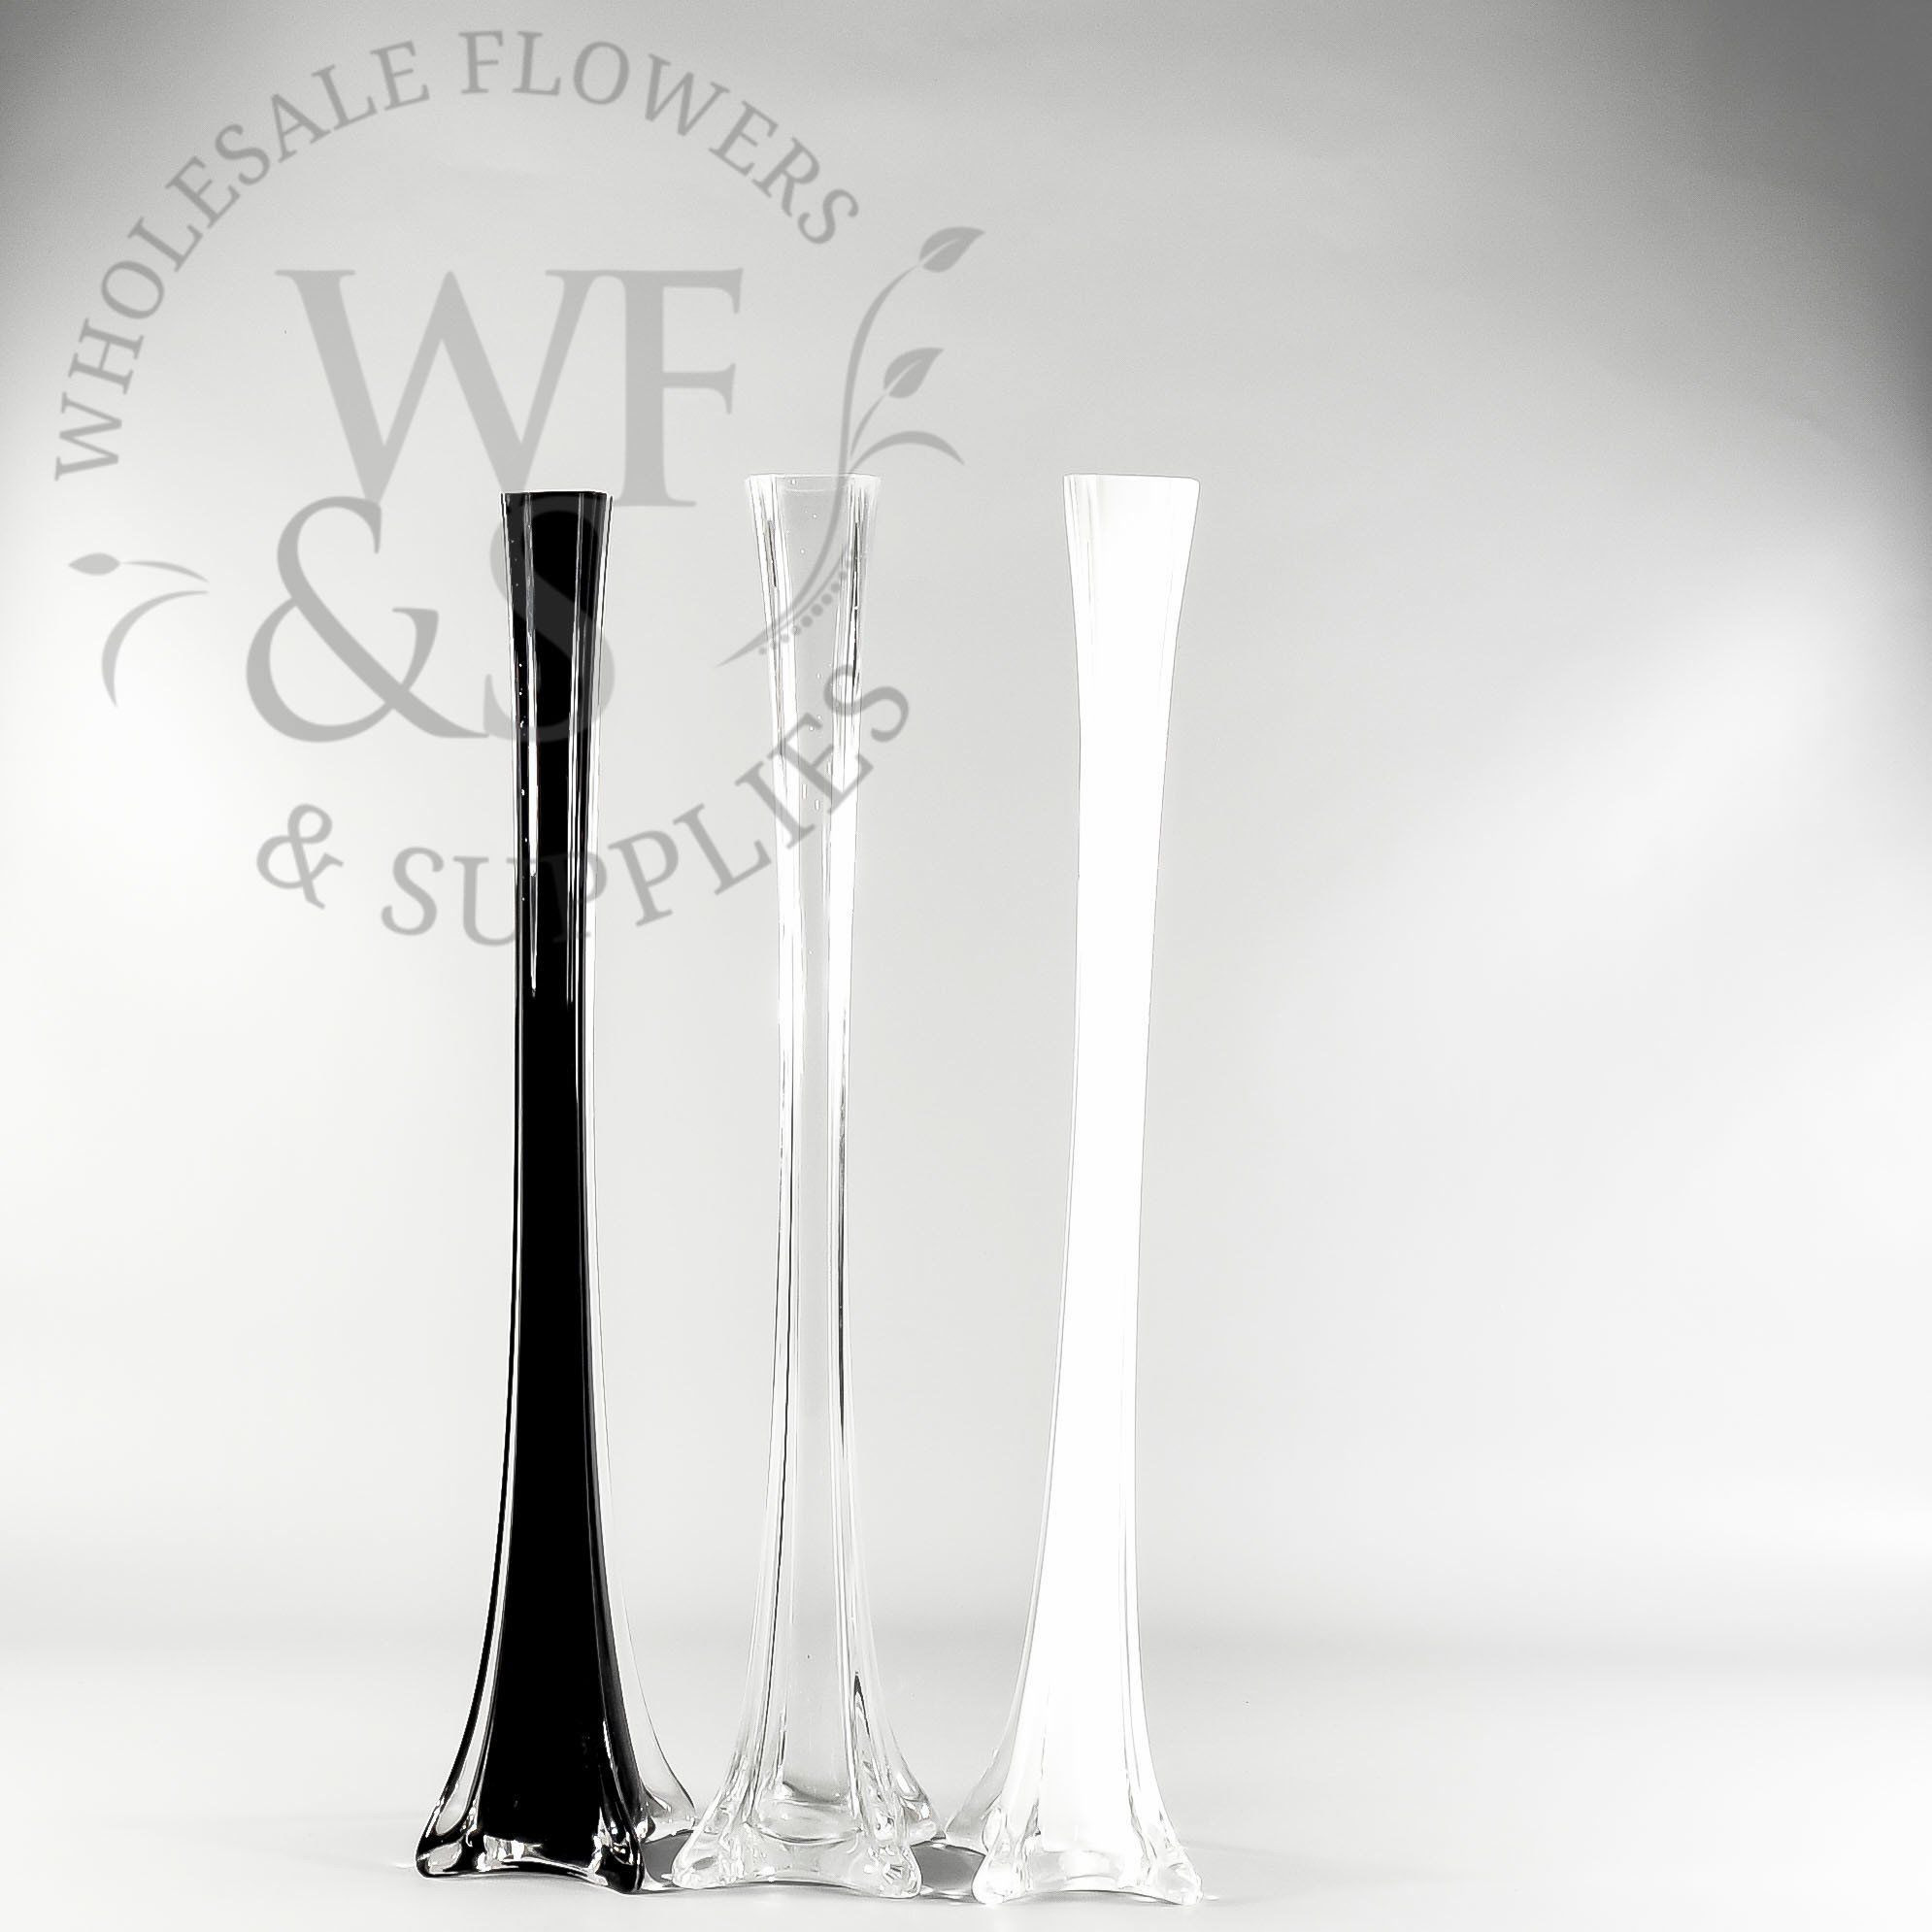 20 inch vase centerpiece of eiffel tower glass vase 20in flower bouquet ideas pinterest with 20 glass eiffel tower vase our price 4 50 height 20 opening diameter